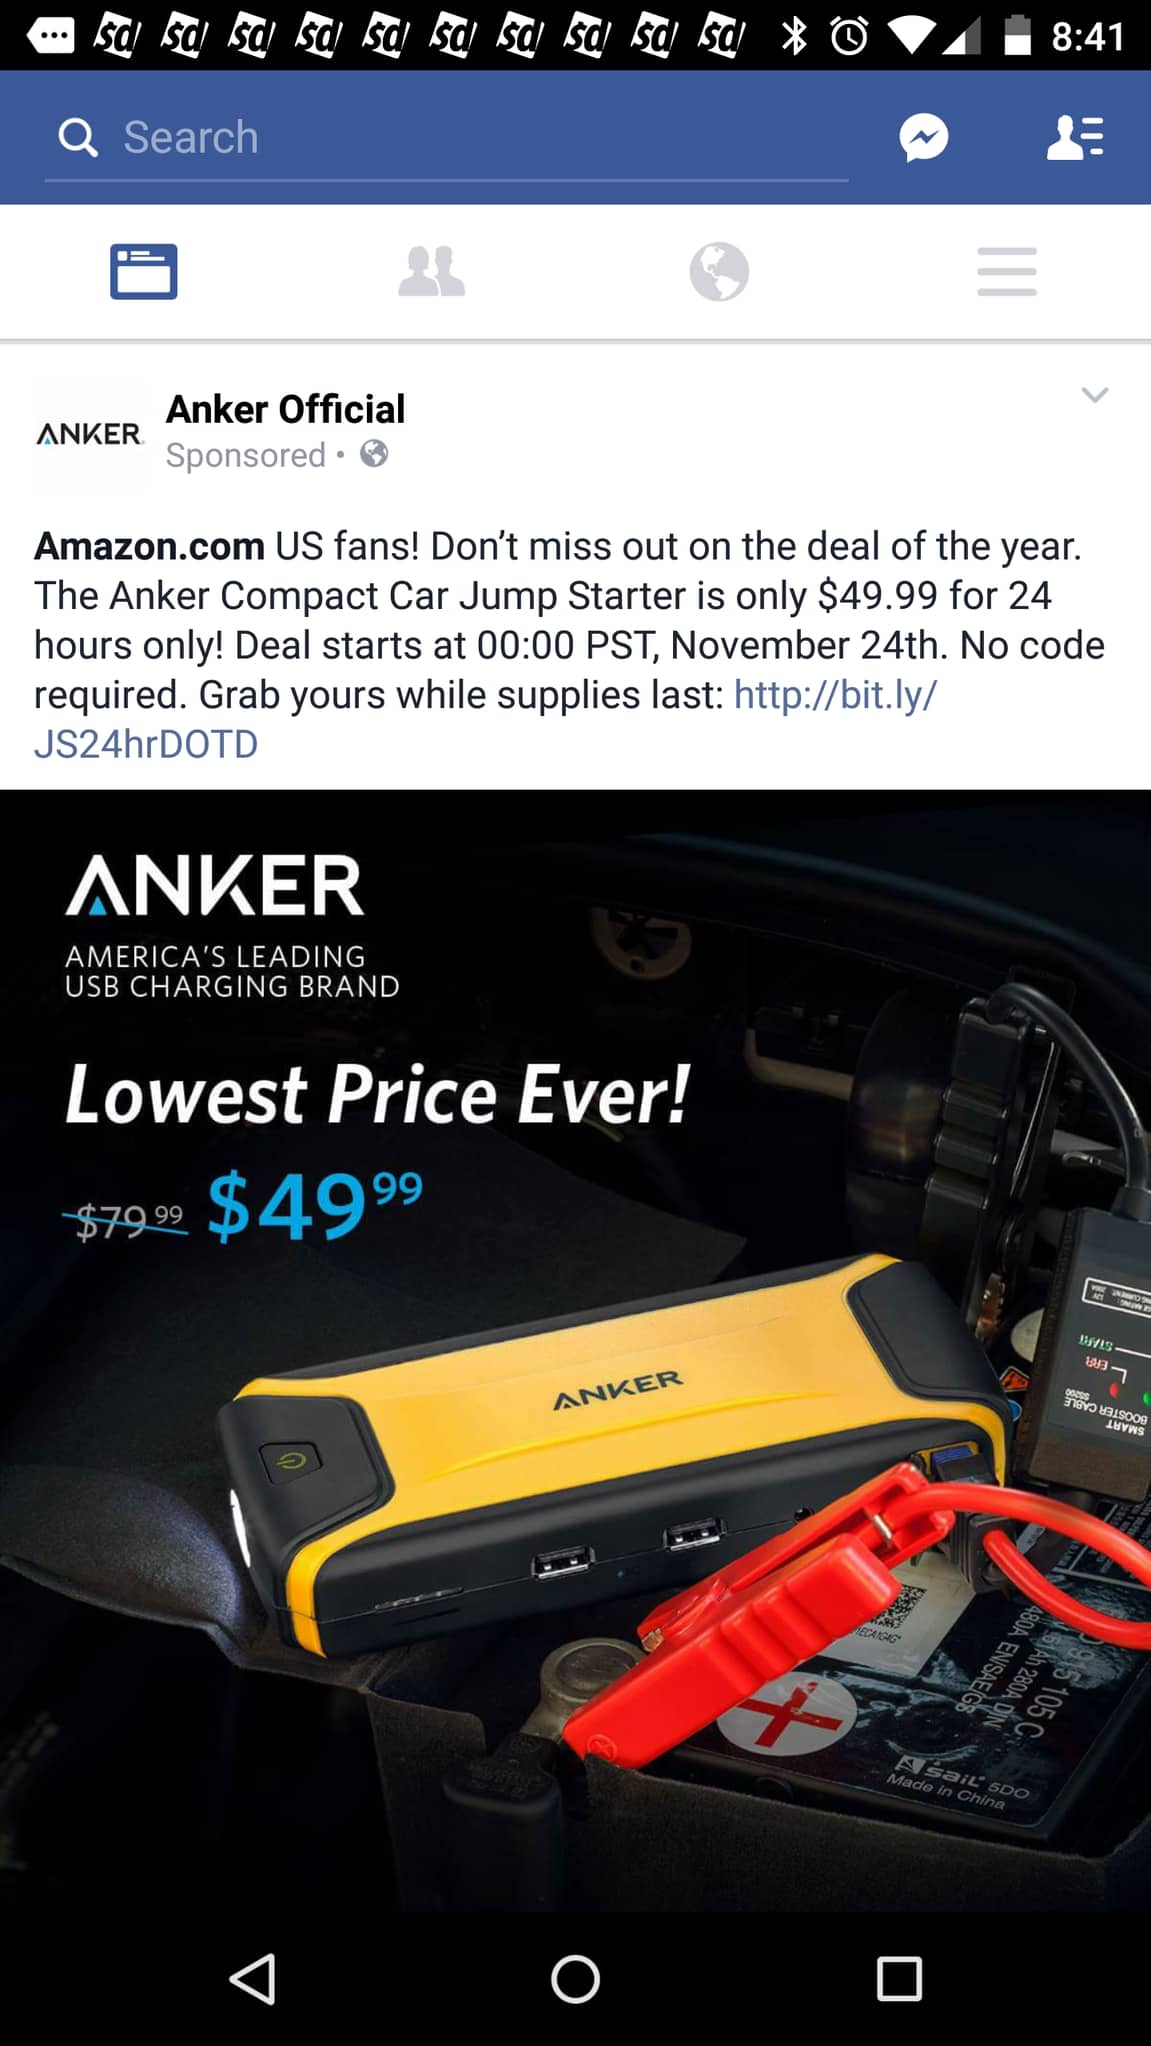 [Ultra Compact] Anker Compact Car Jump Starter and Portable Charger Power Bank with 400A Peak Current, Advanced Safety Protection and Built-In LED $49.99 @ Amazon Deal Of The Day